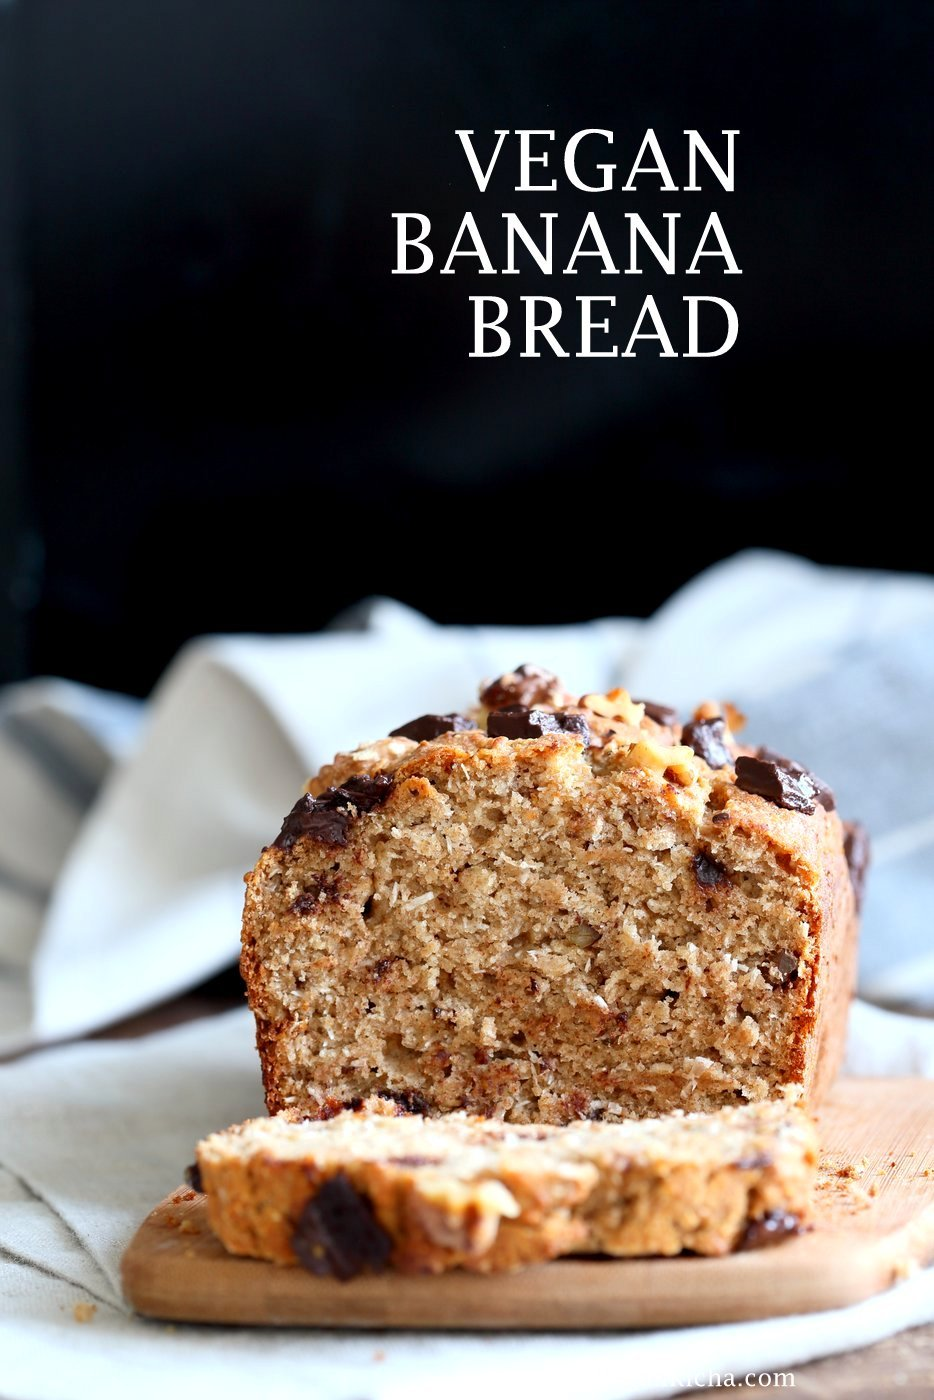 Vegan Banana Bread With Toasted Walnuts And Coconut 1 Bowl Vegan Richa